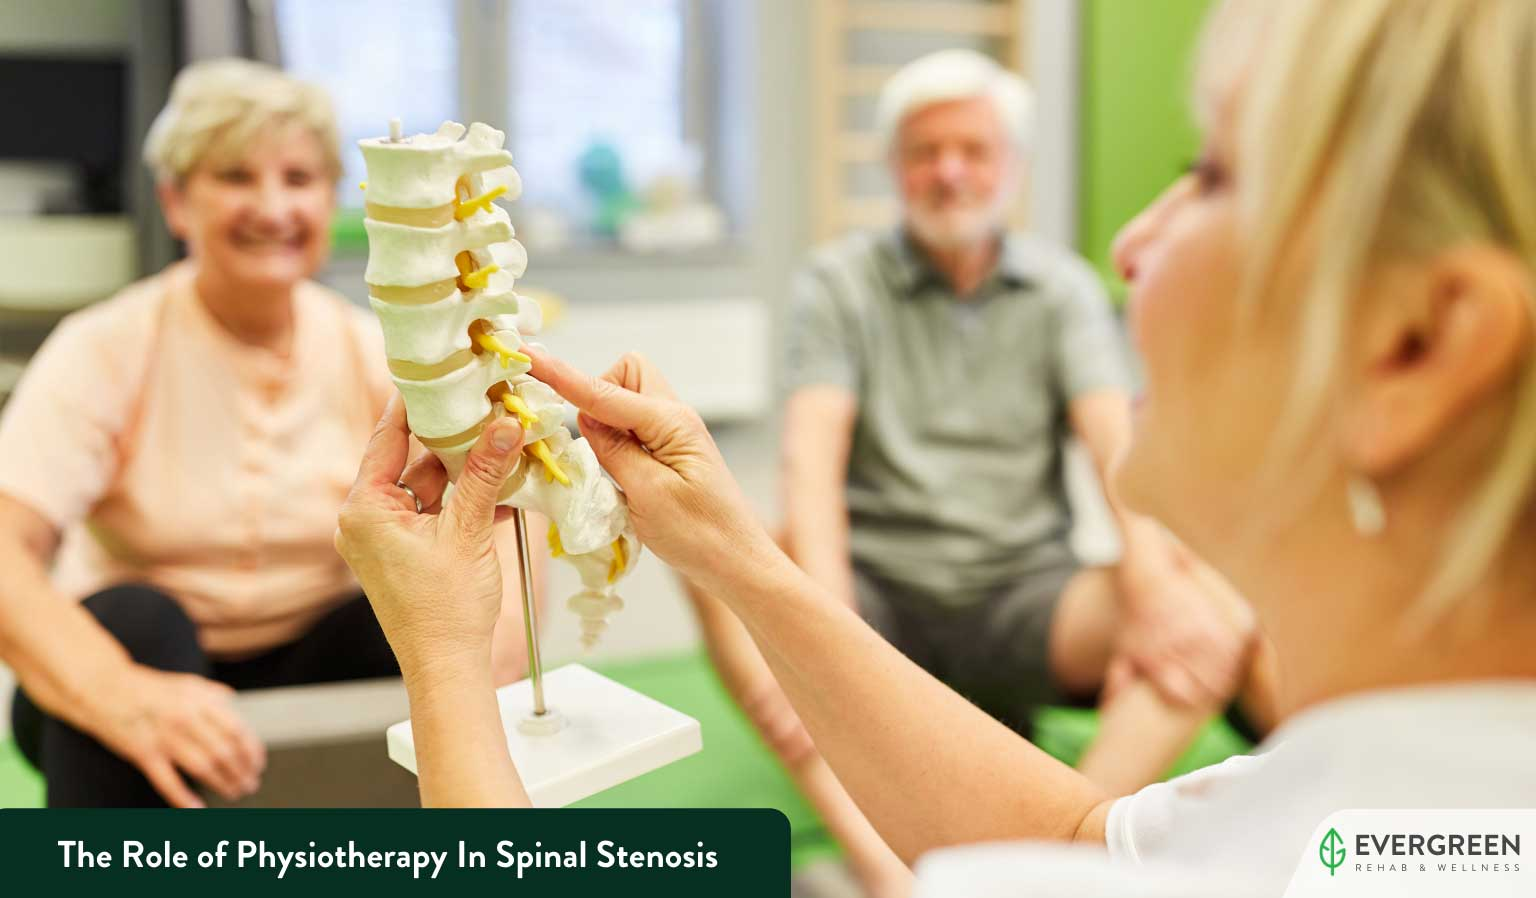 The Role of Physiotherapy In Spinal Stenosis